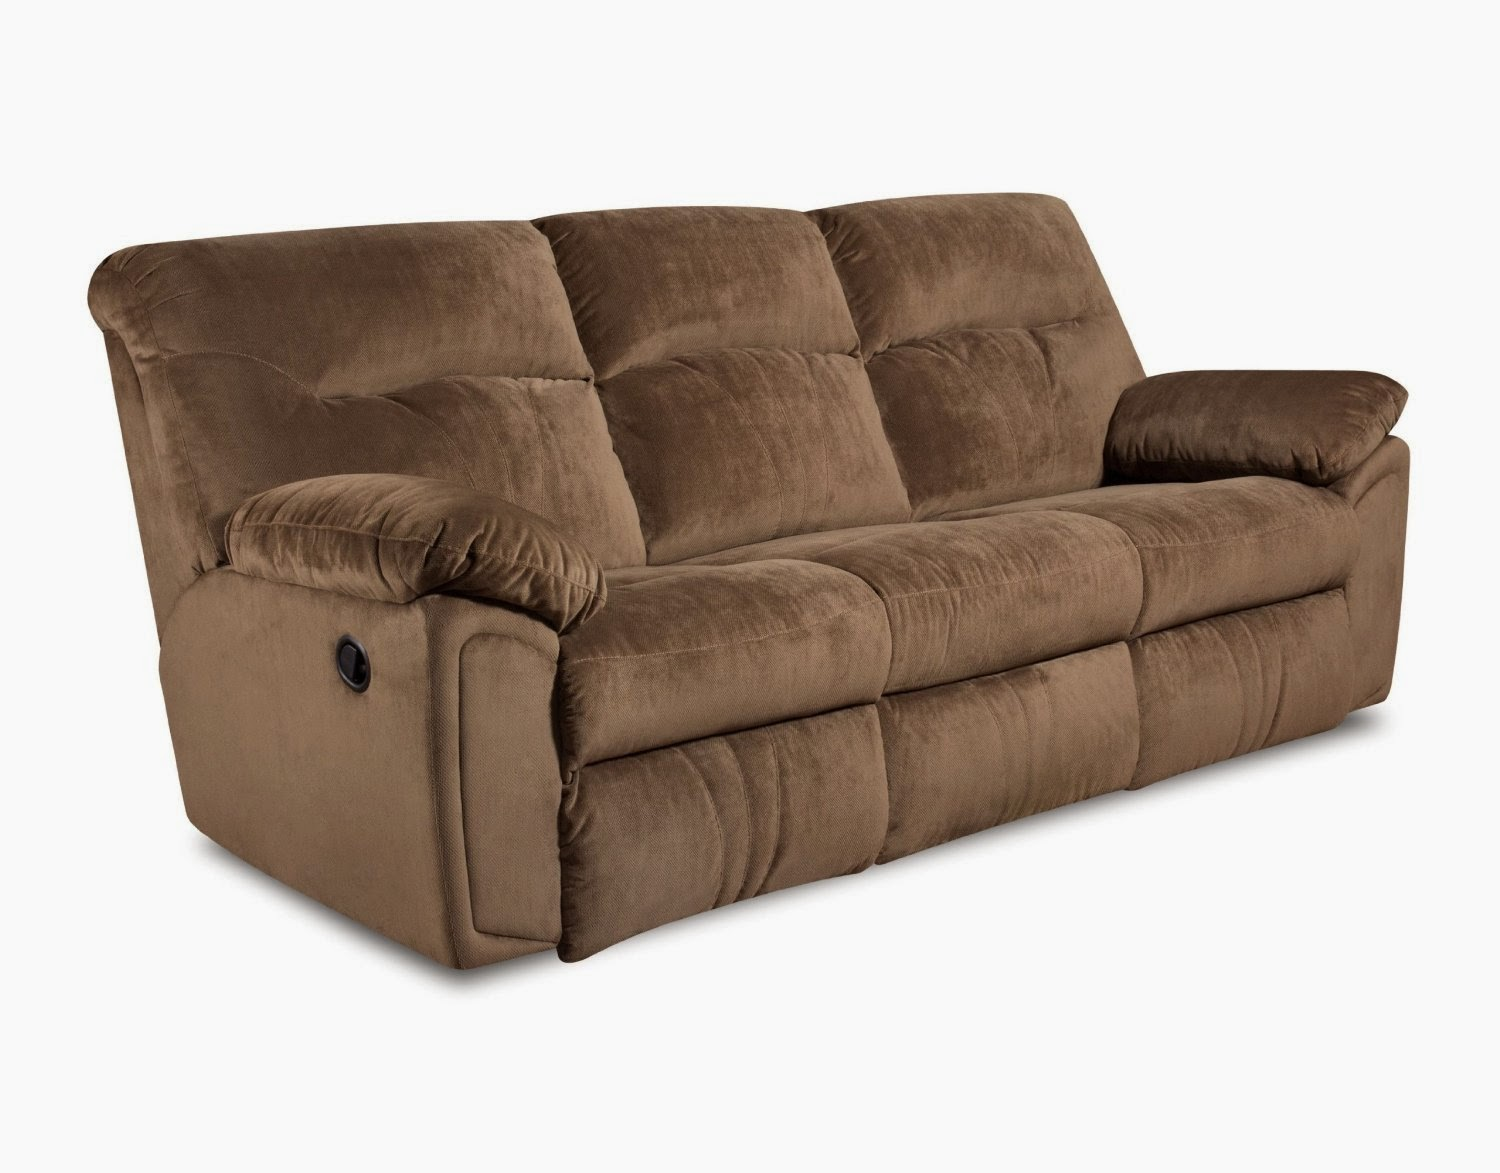 Splendor Double Southern Motion Reclining Leather Sofa